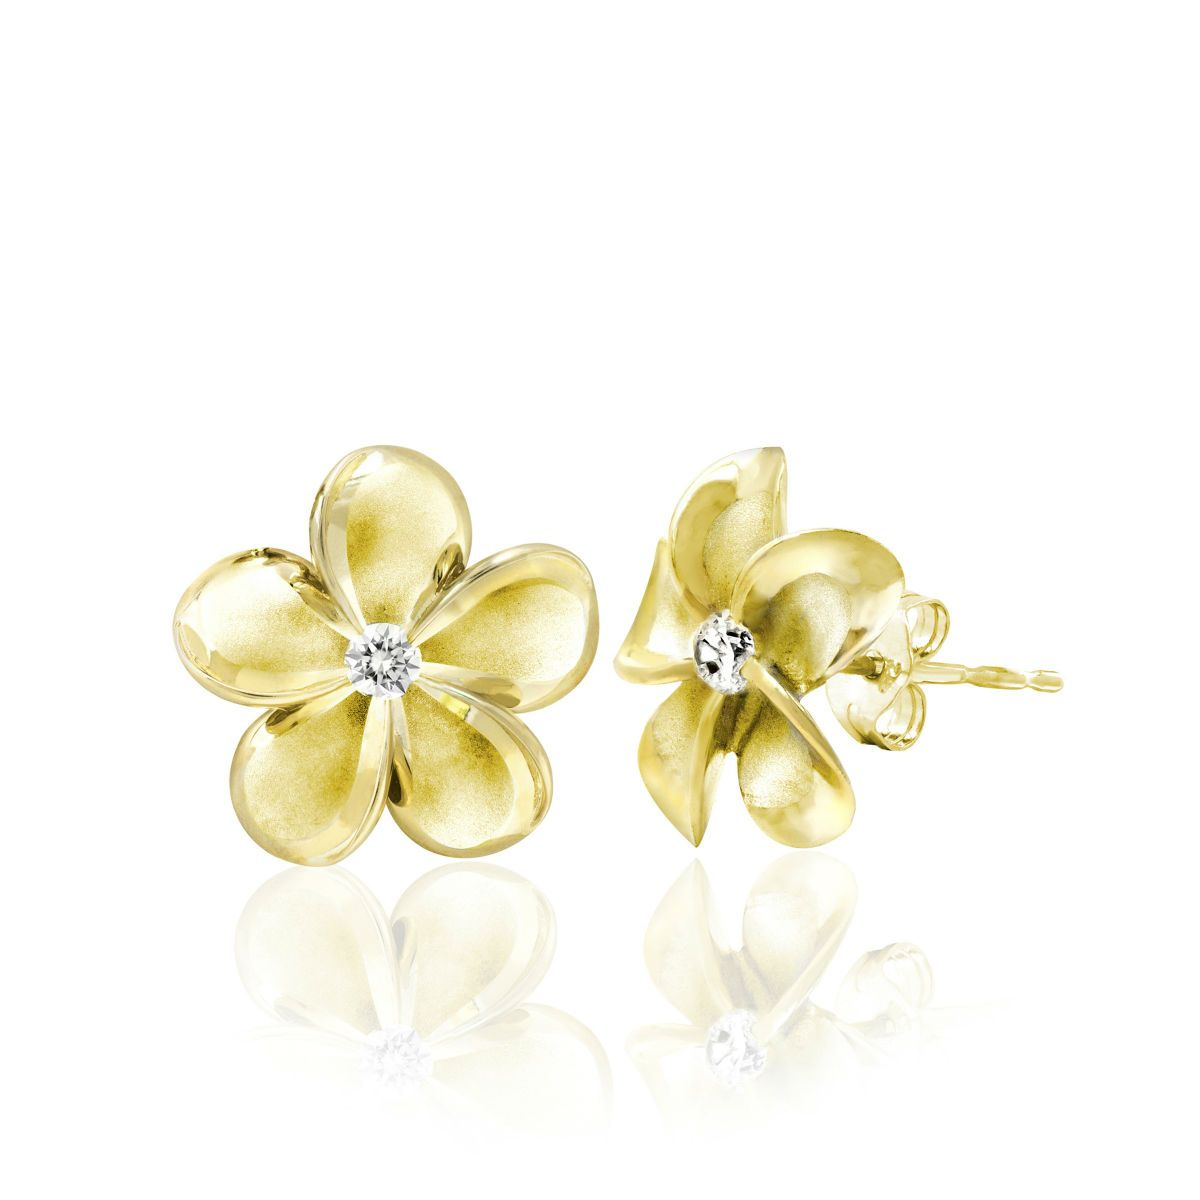 84e6bbd4d Queen Plumeria Stud Earrings with Diamonds, 15mm | Foods and Recipes ...